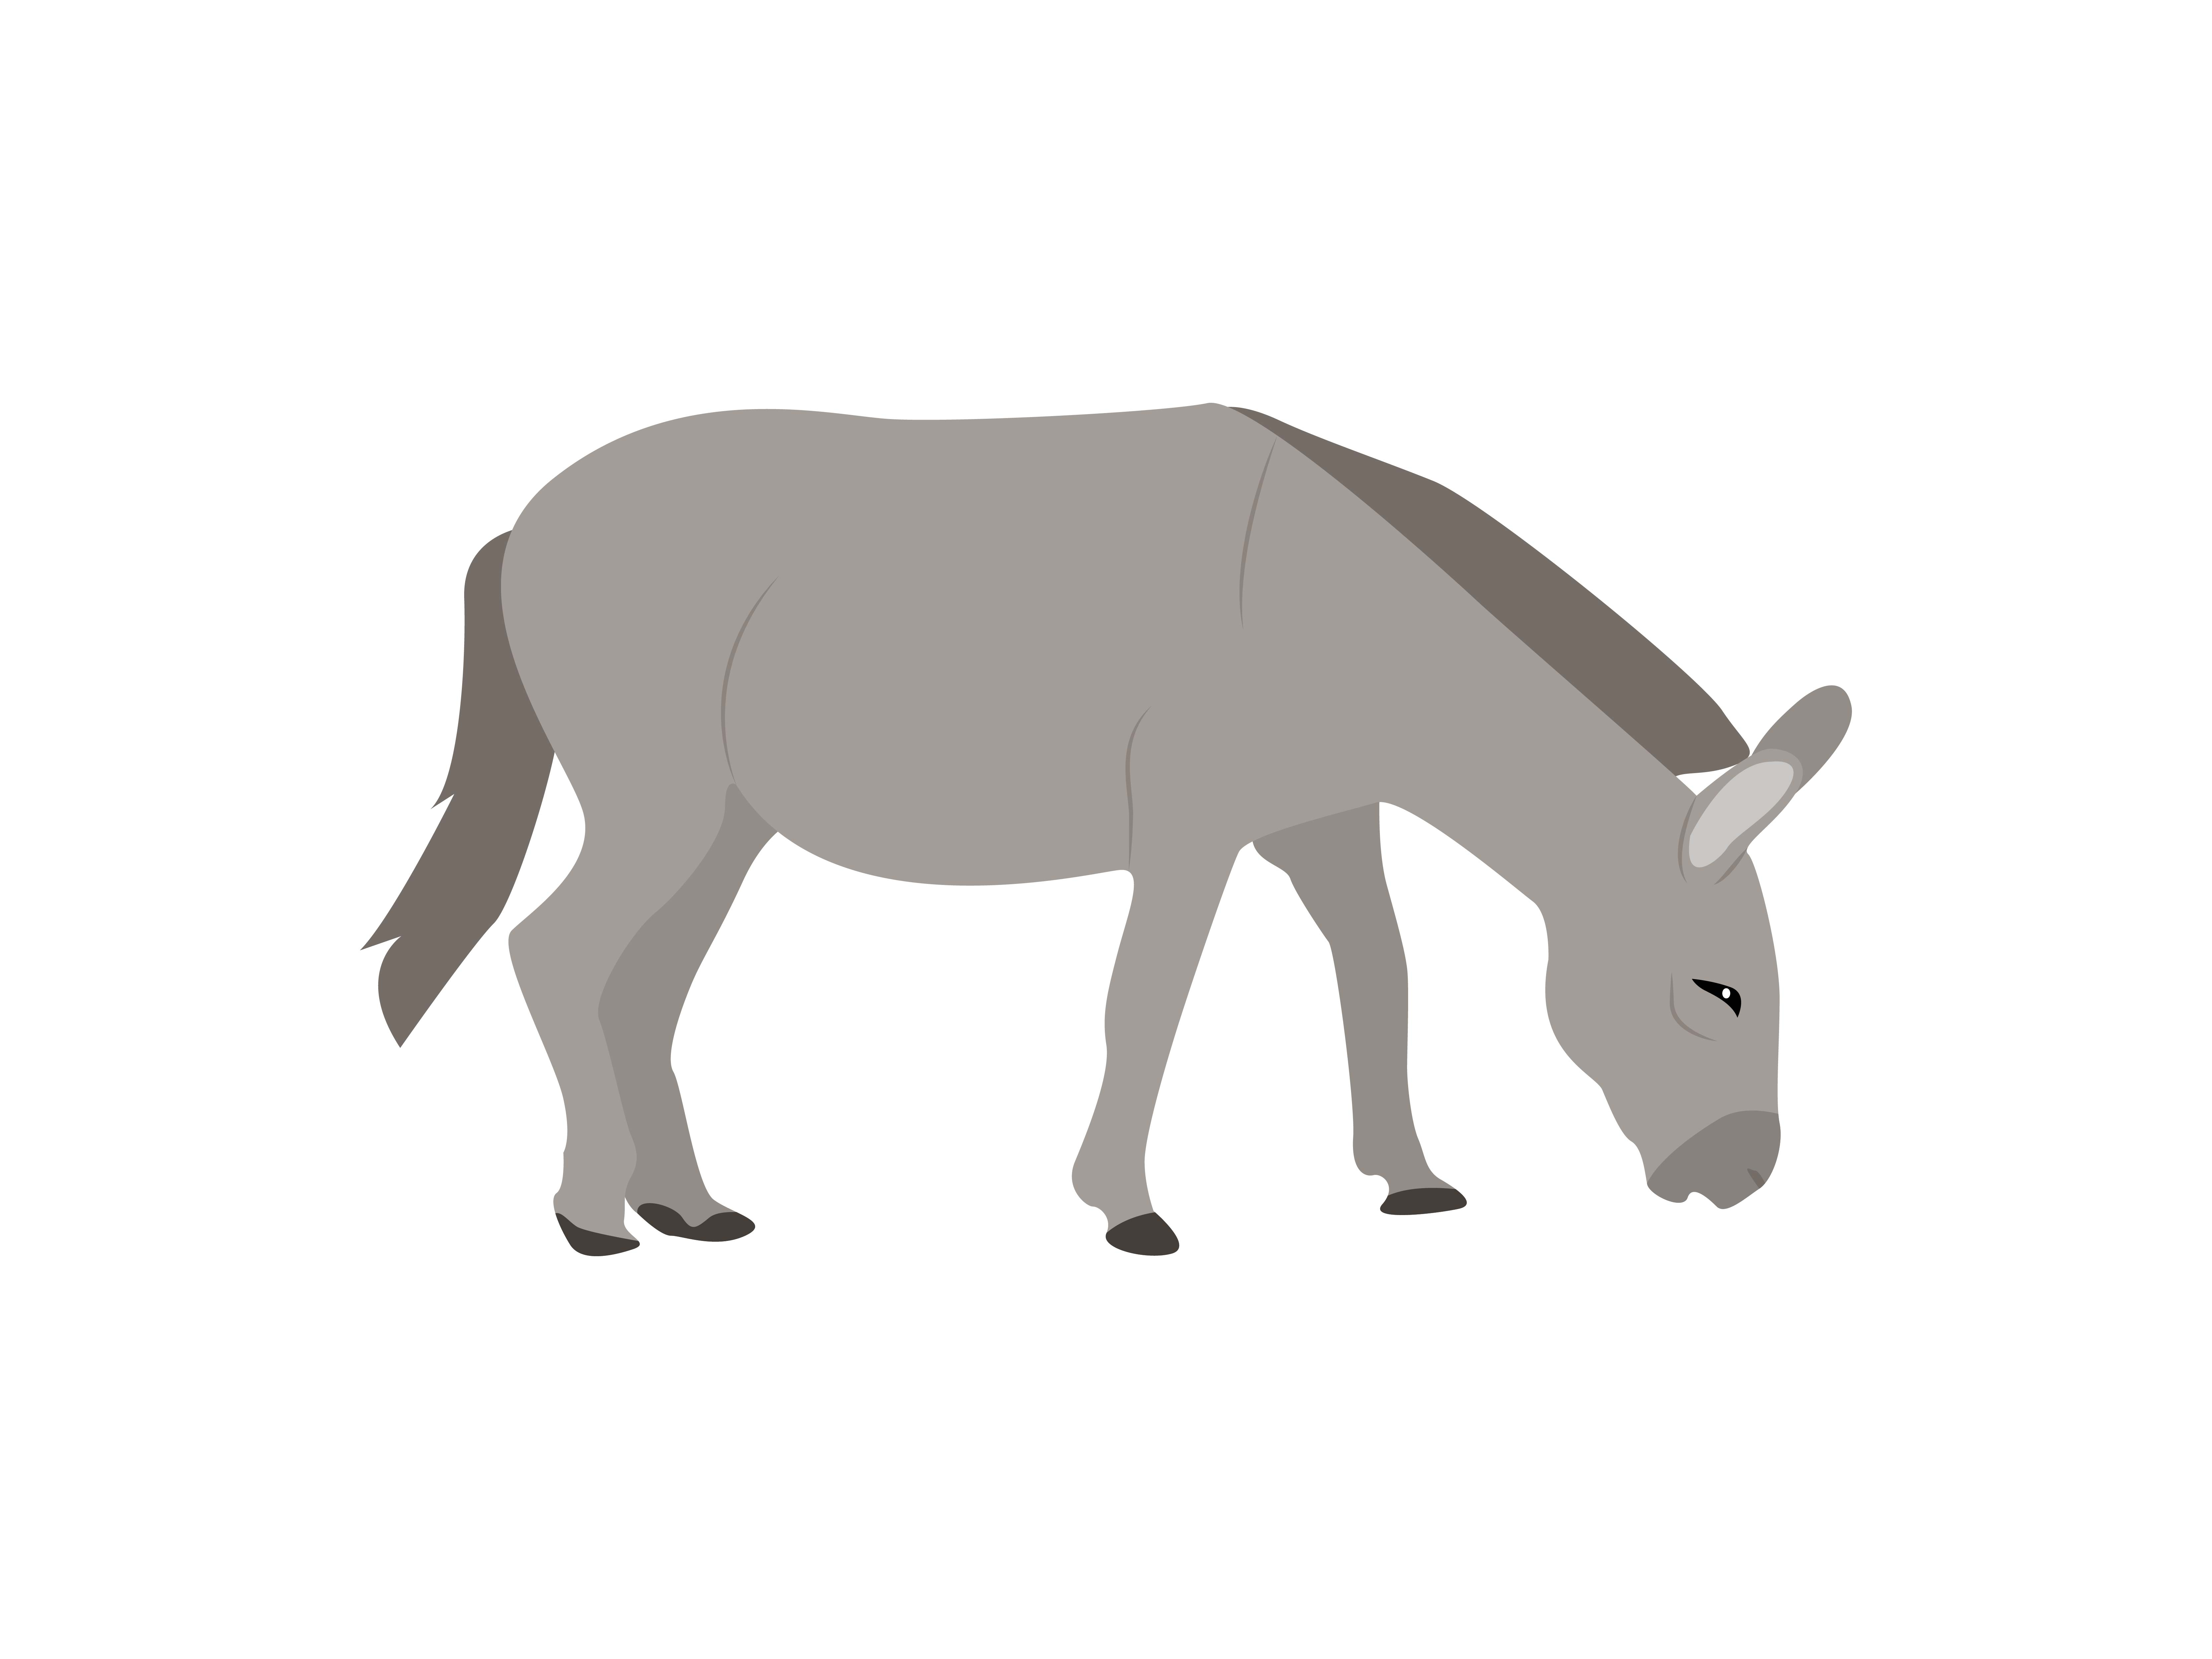 Download Free Donkey Animal Graphic By Archshape Creative Fabrica for Cricut Explore, Silhouette and other cutting machines.